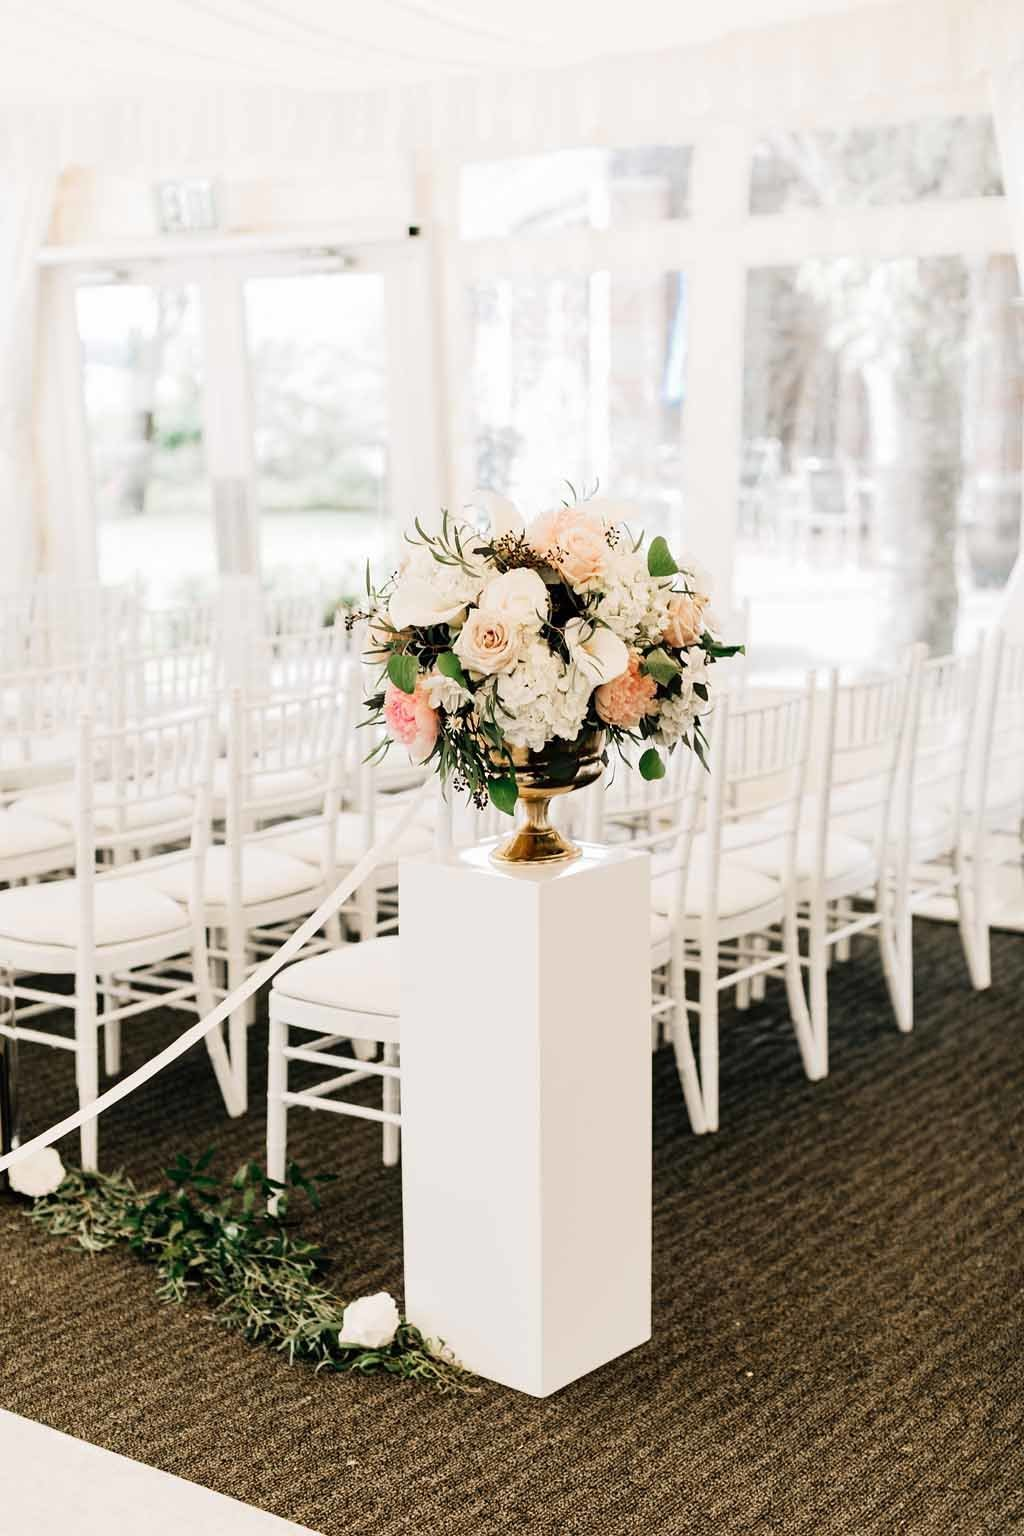 Gold urn blush and cream floral on stone pillars  stand on either side of aisle entrance.